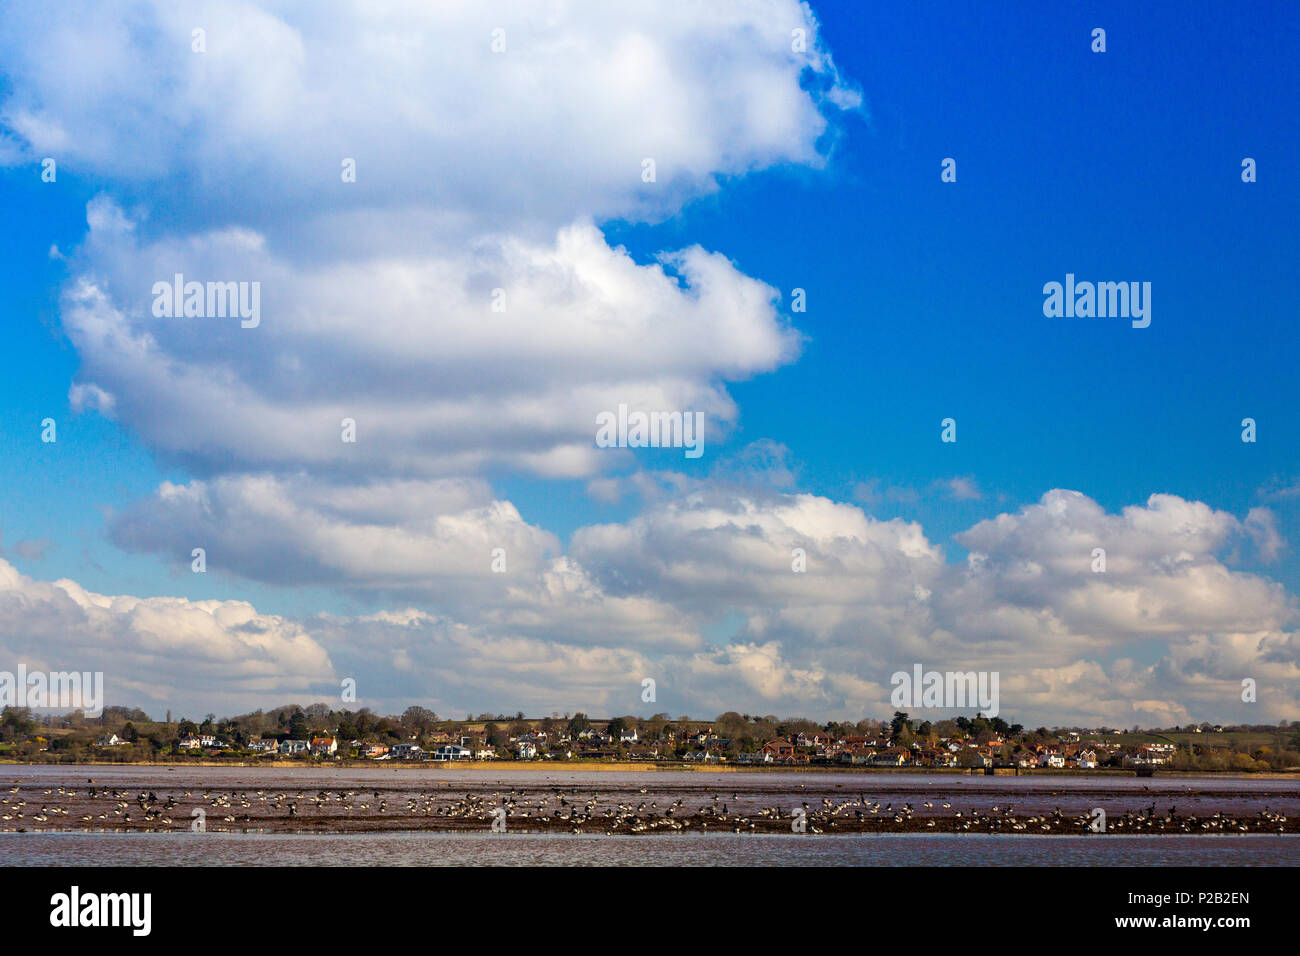 An assortment of wading birds on the mudflats of the River Exe with Exton beyond, Devon, England, UK - Stock Image